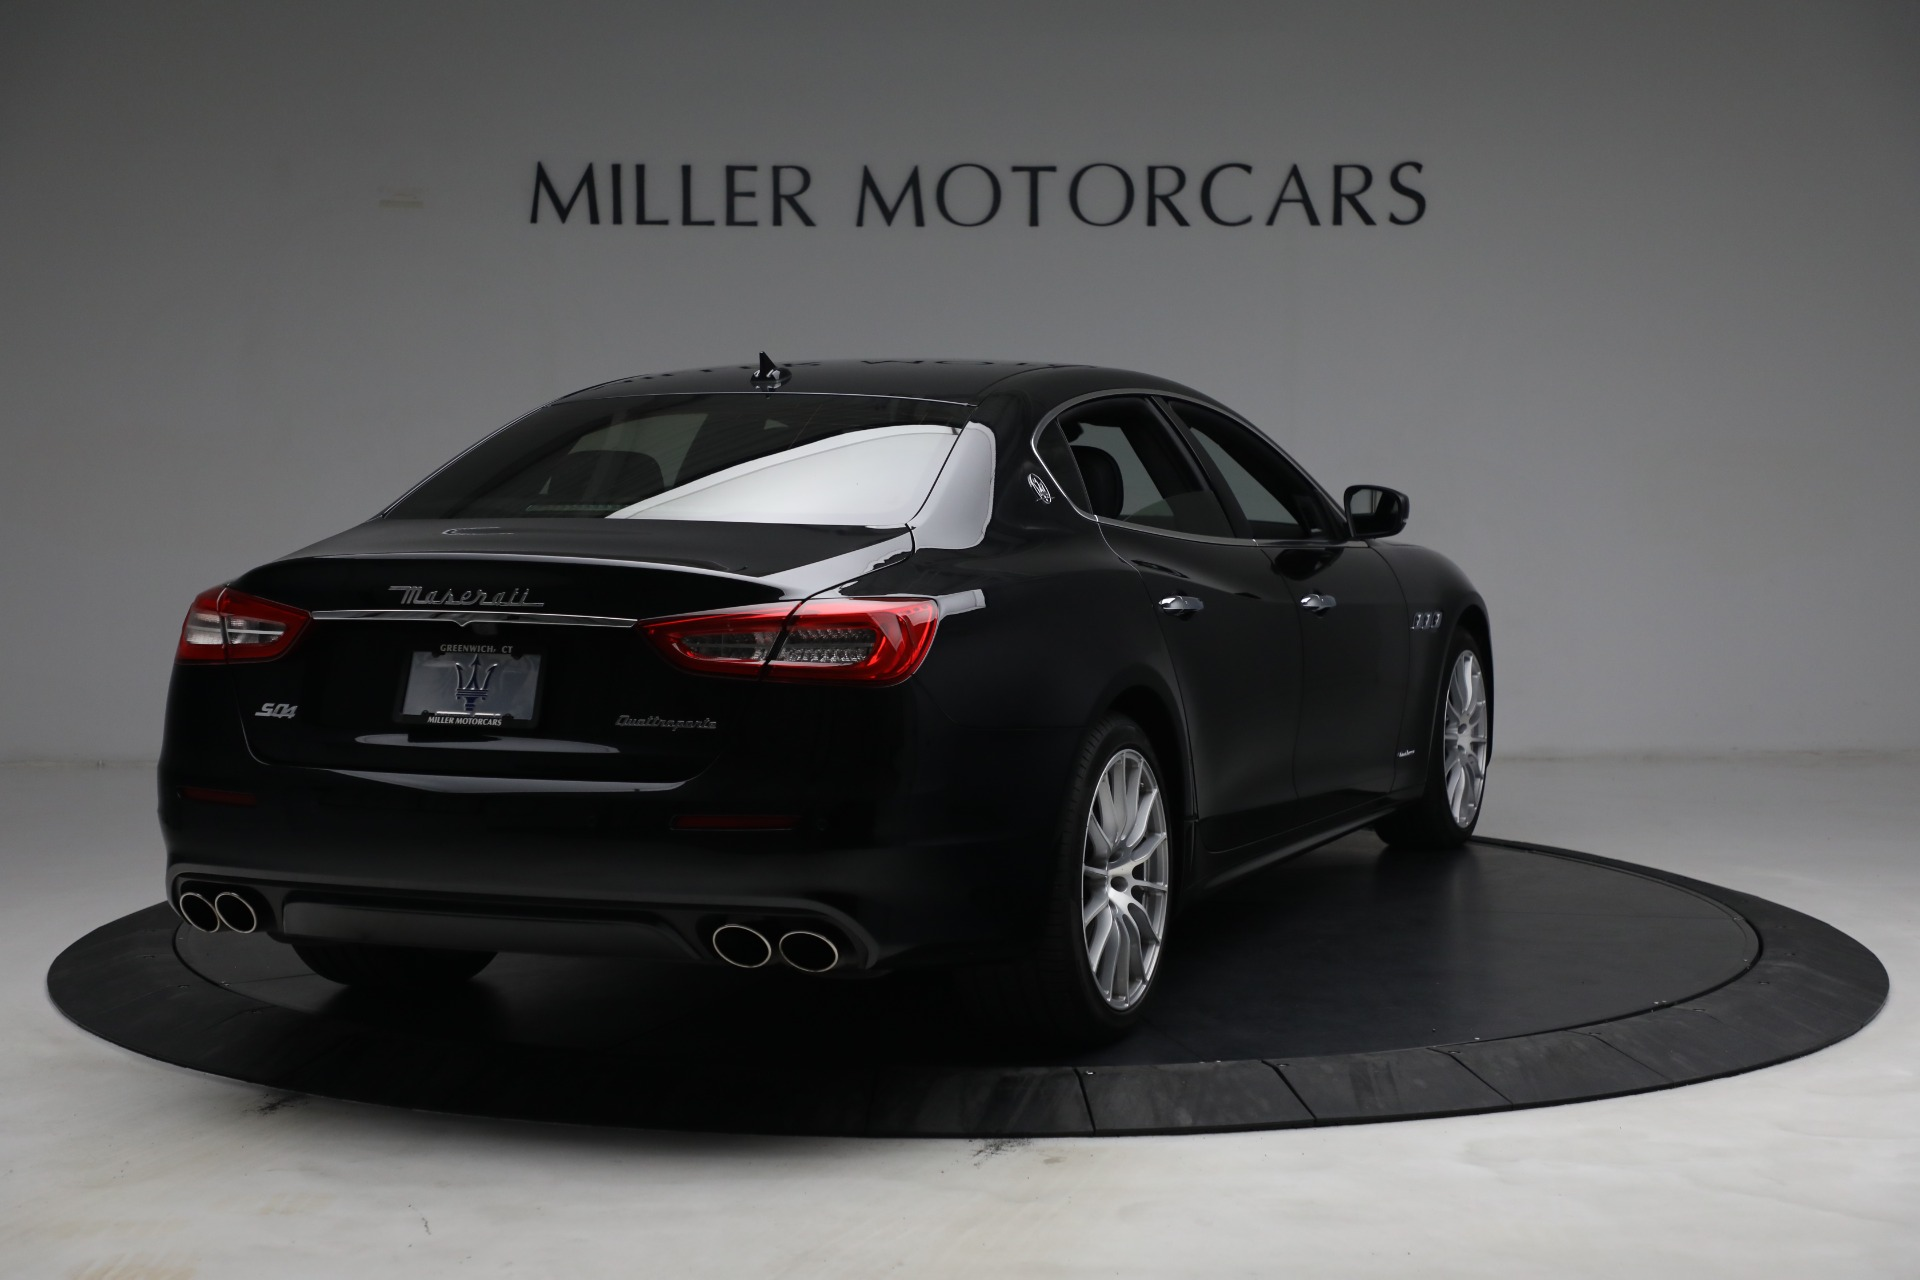 New 2019 Maserati Quattroporte S Q4 GranLusso For Sale In Greenwich, CT 2619_p7